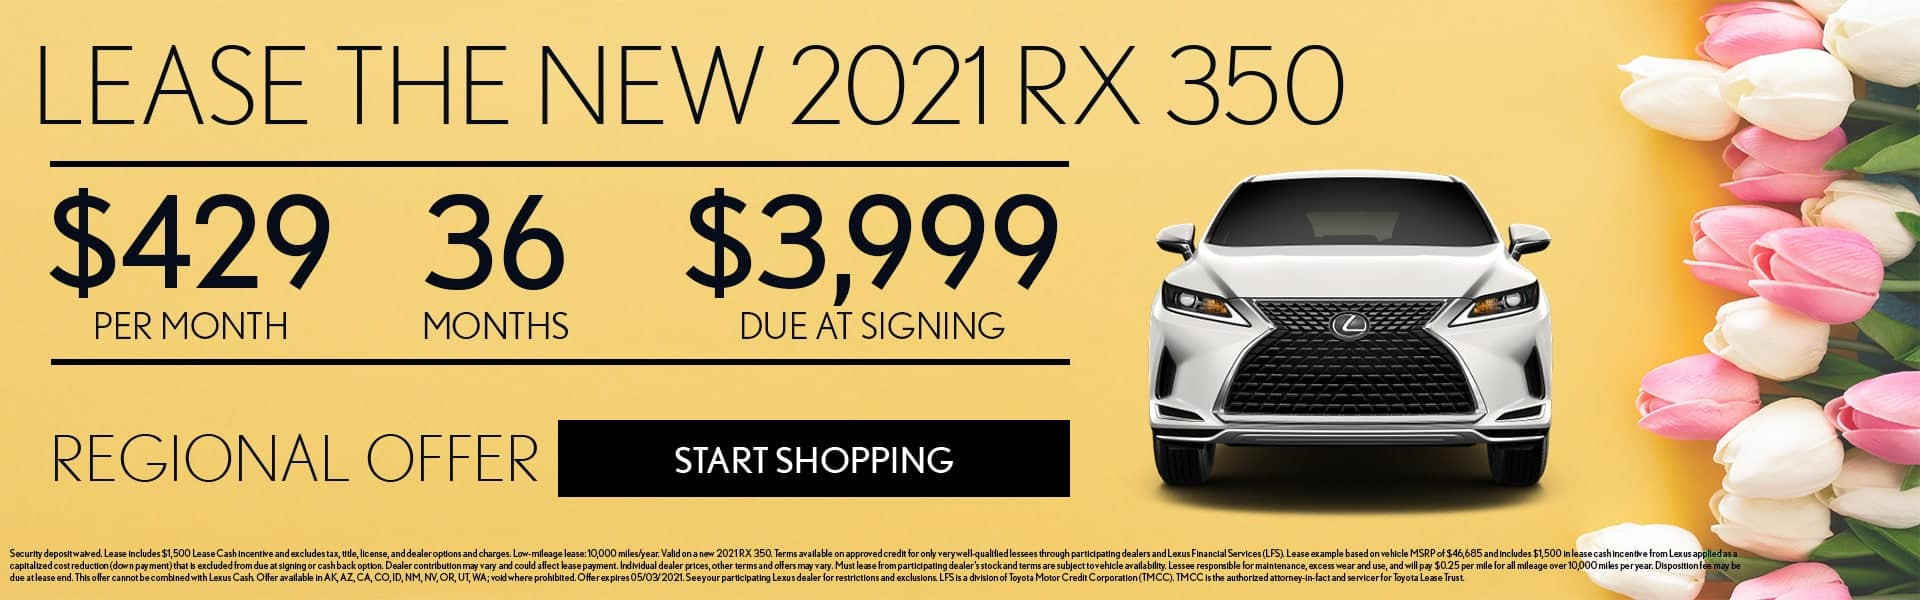 2021 Lexus RX offer